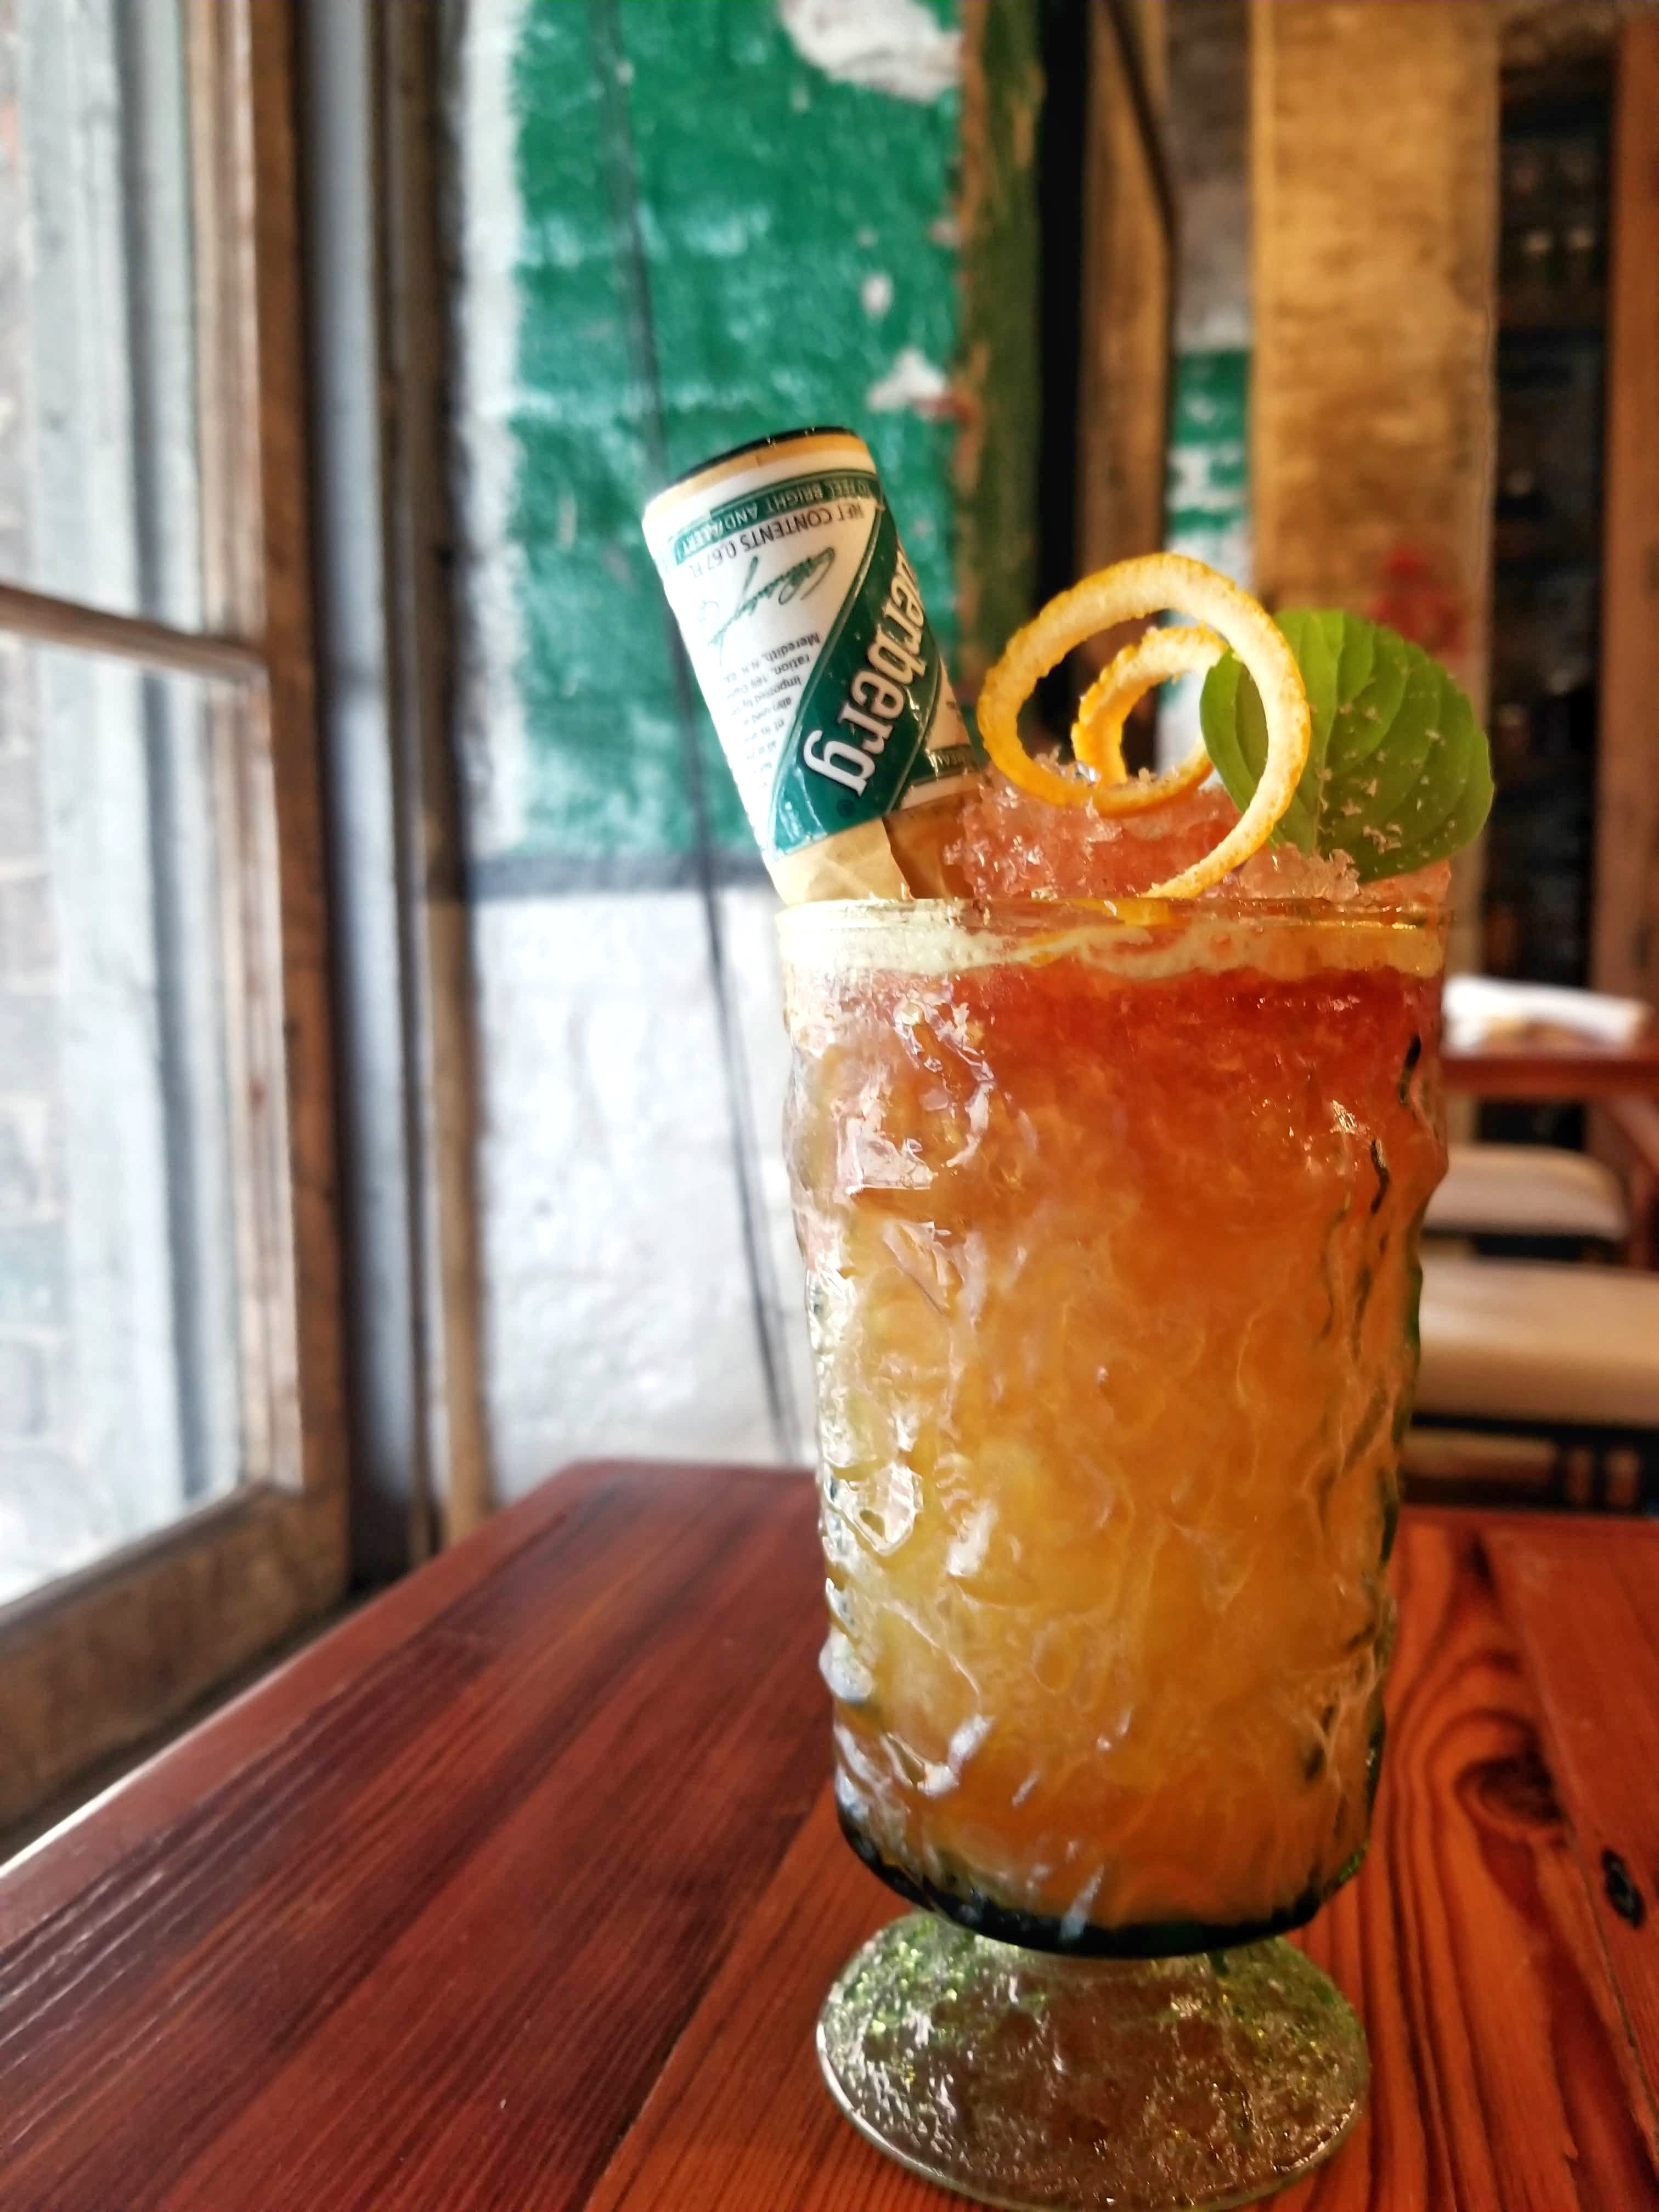 Underberg Sour Cocktail from Sac-a-Lait